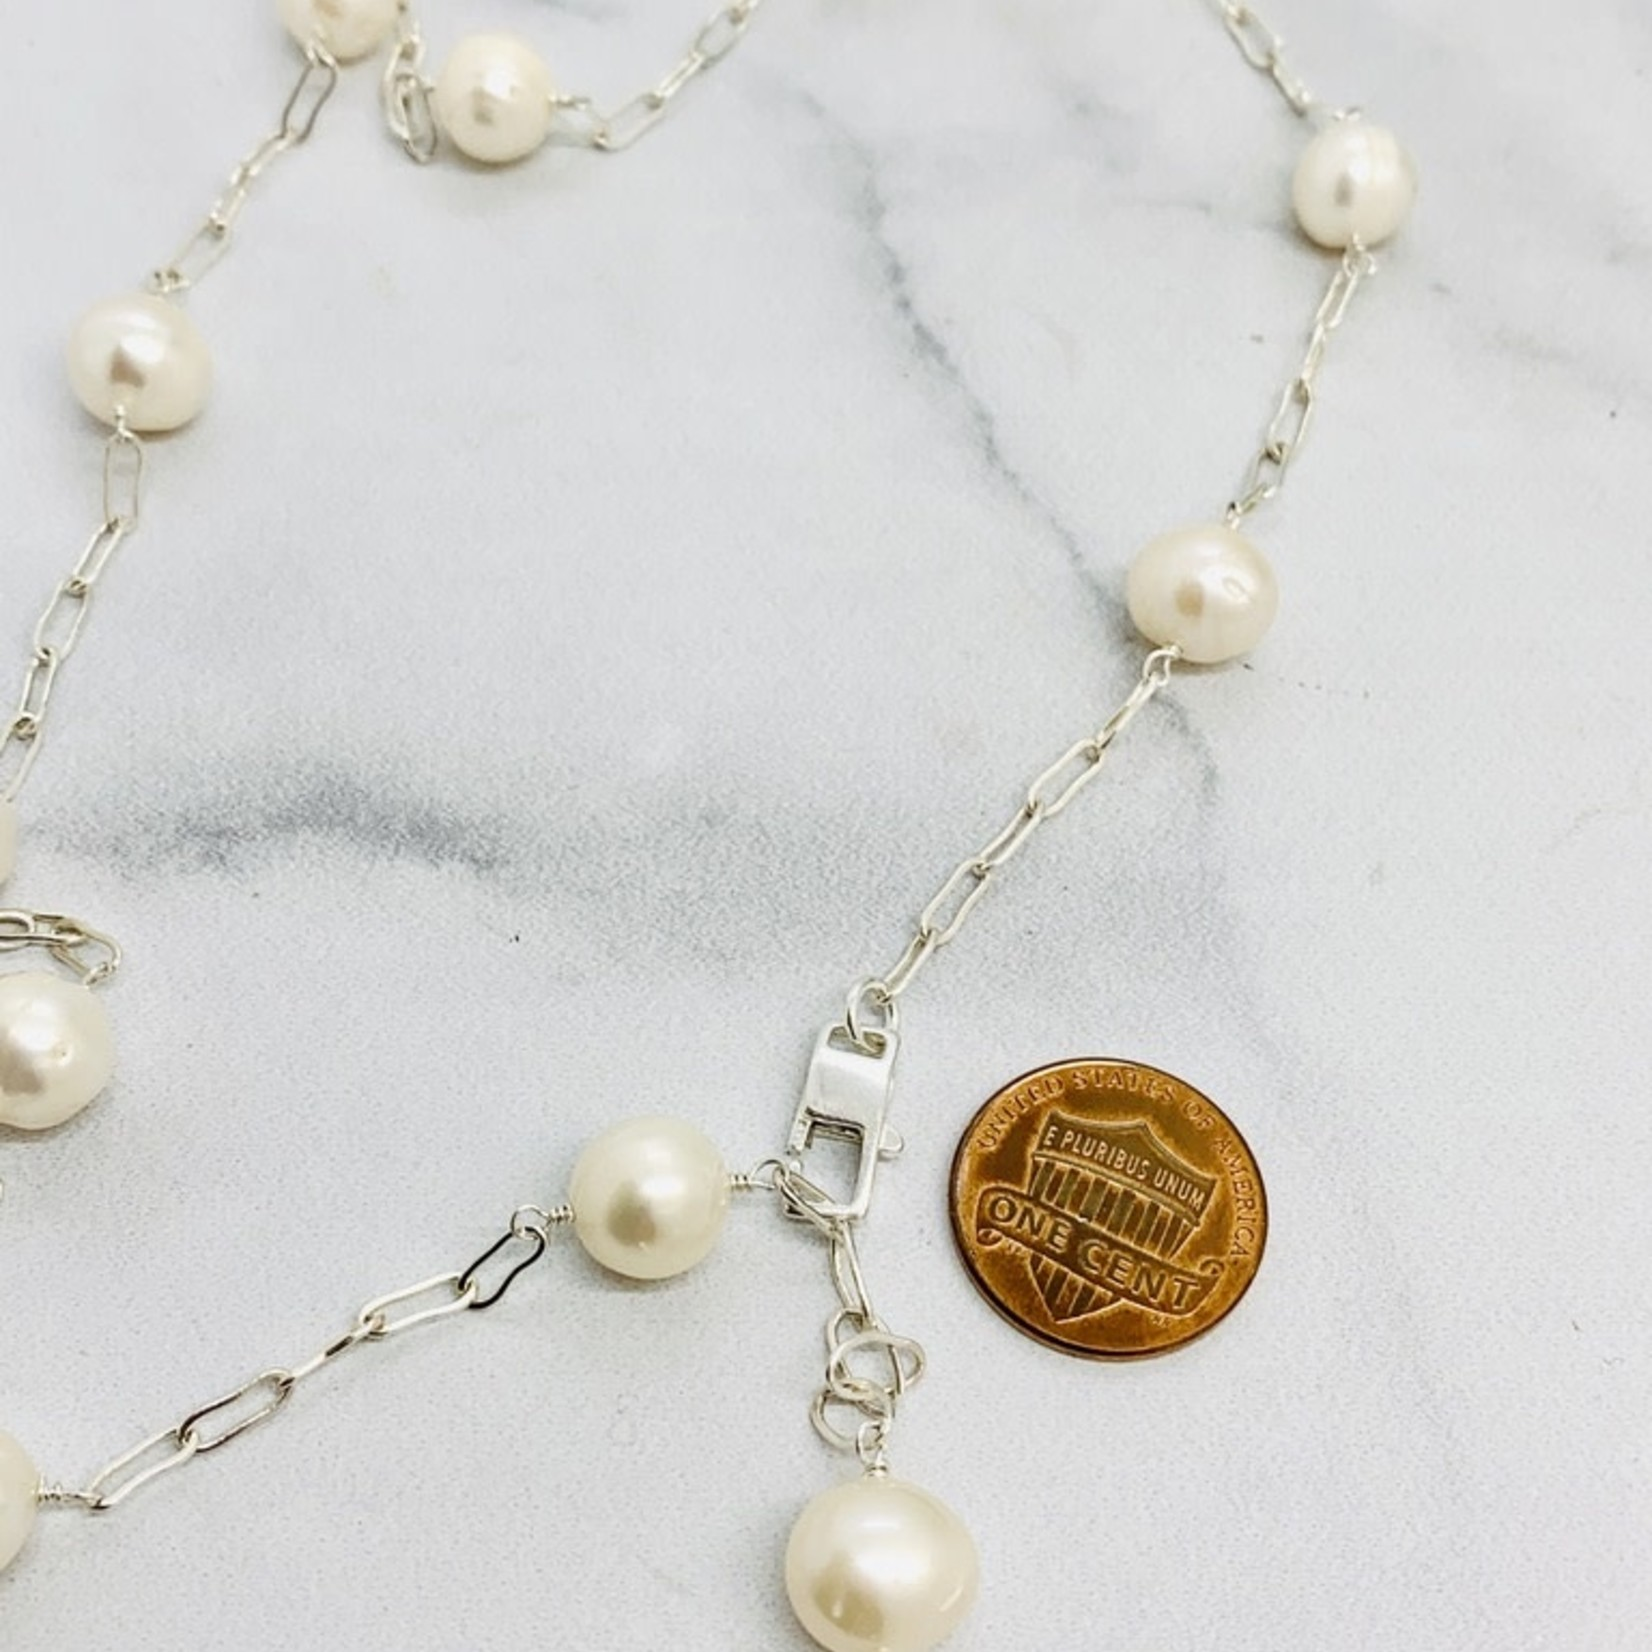 Handmade necklace with large white pearls, paperclip chain